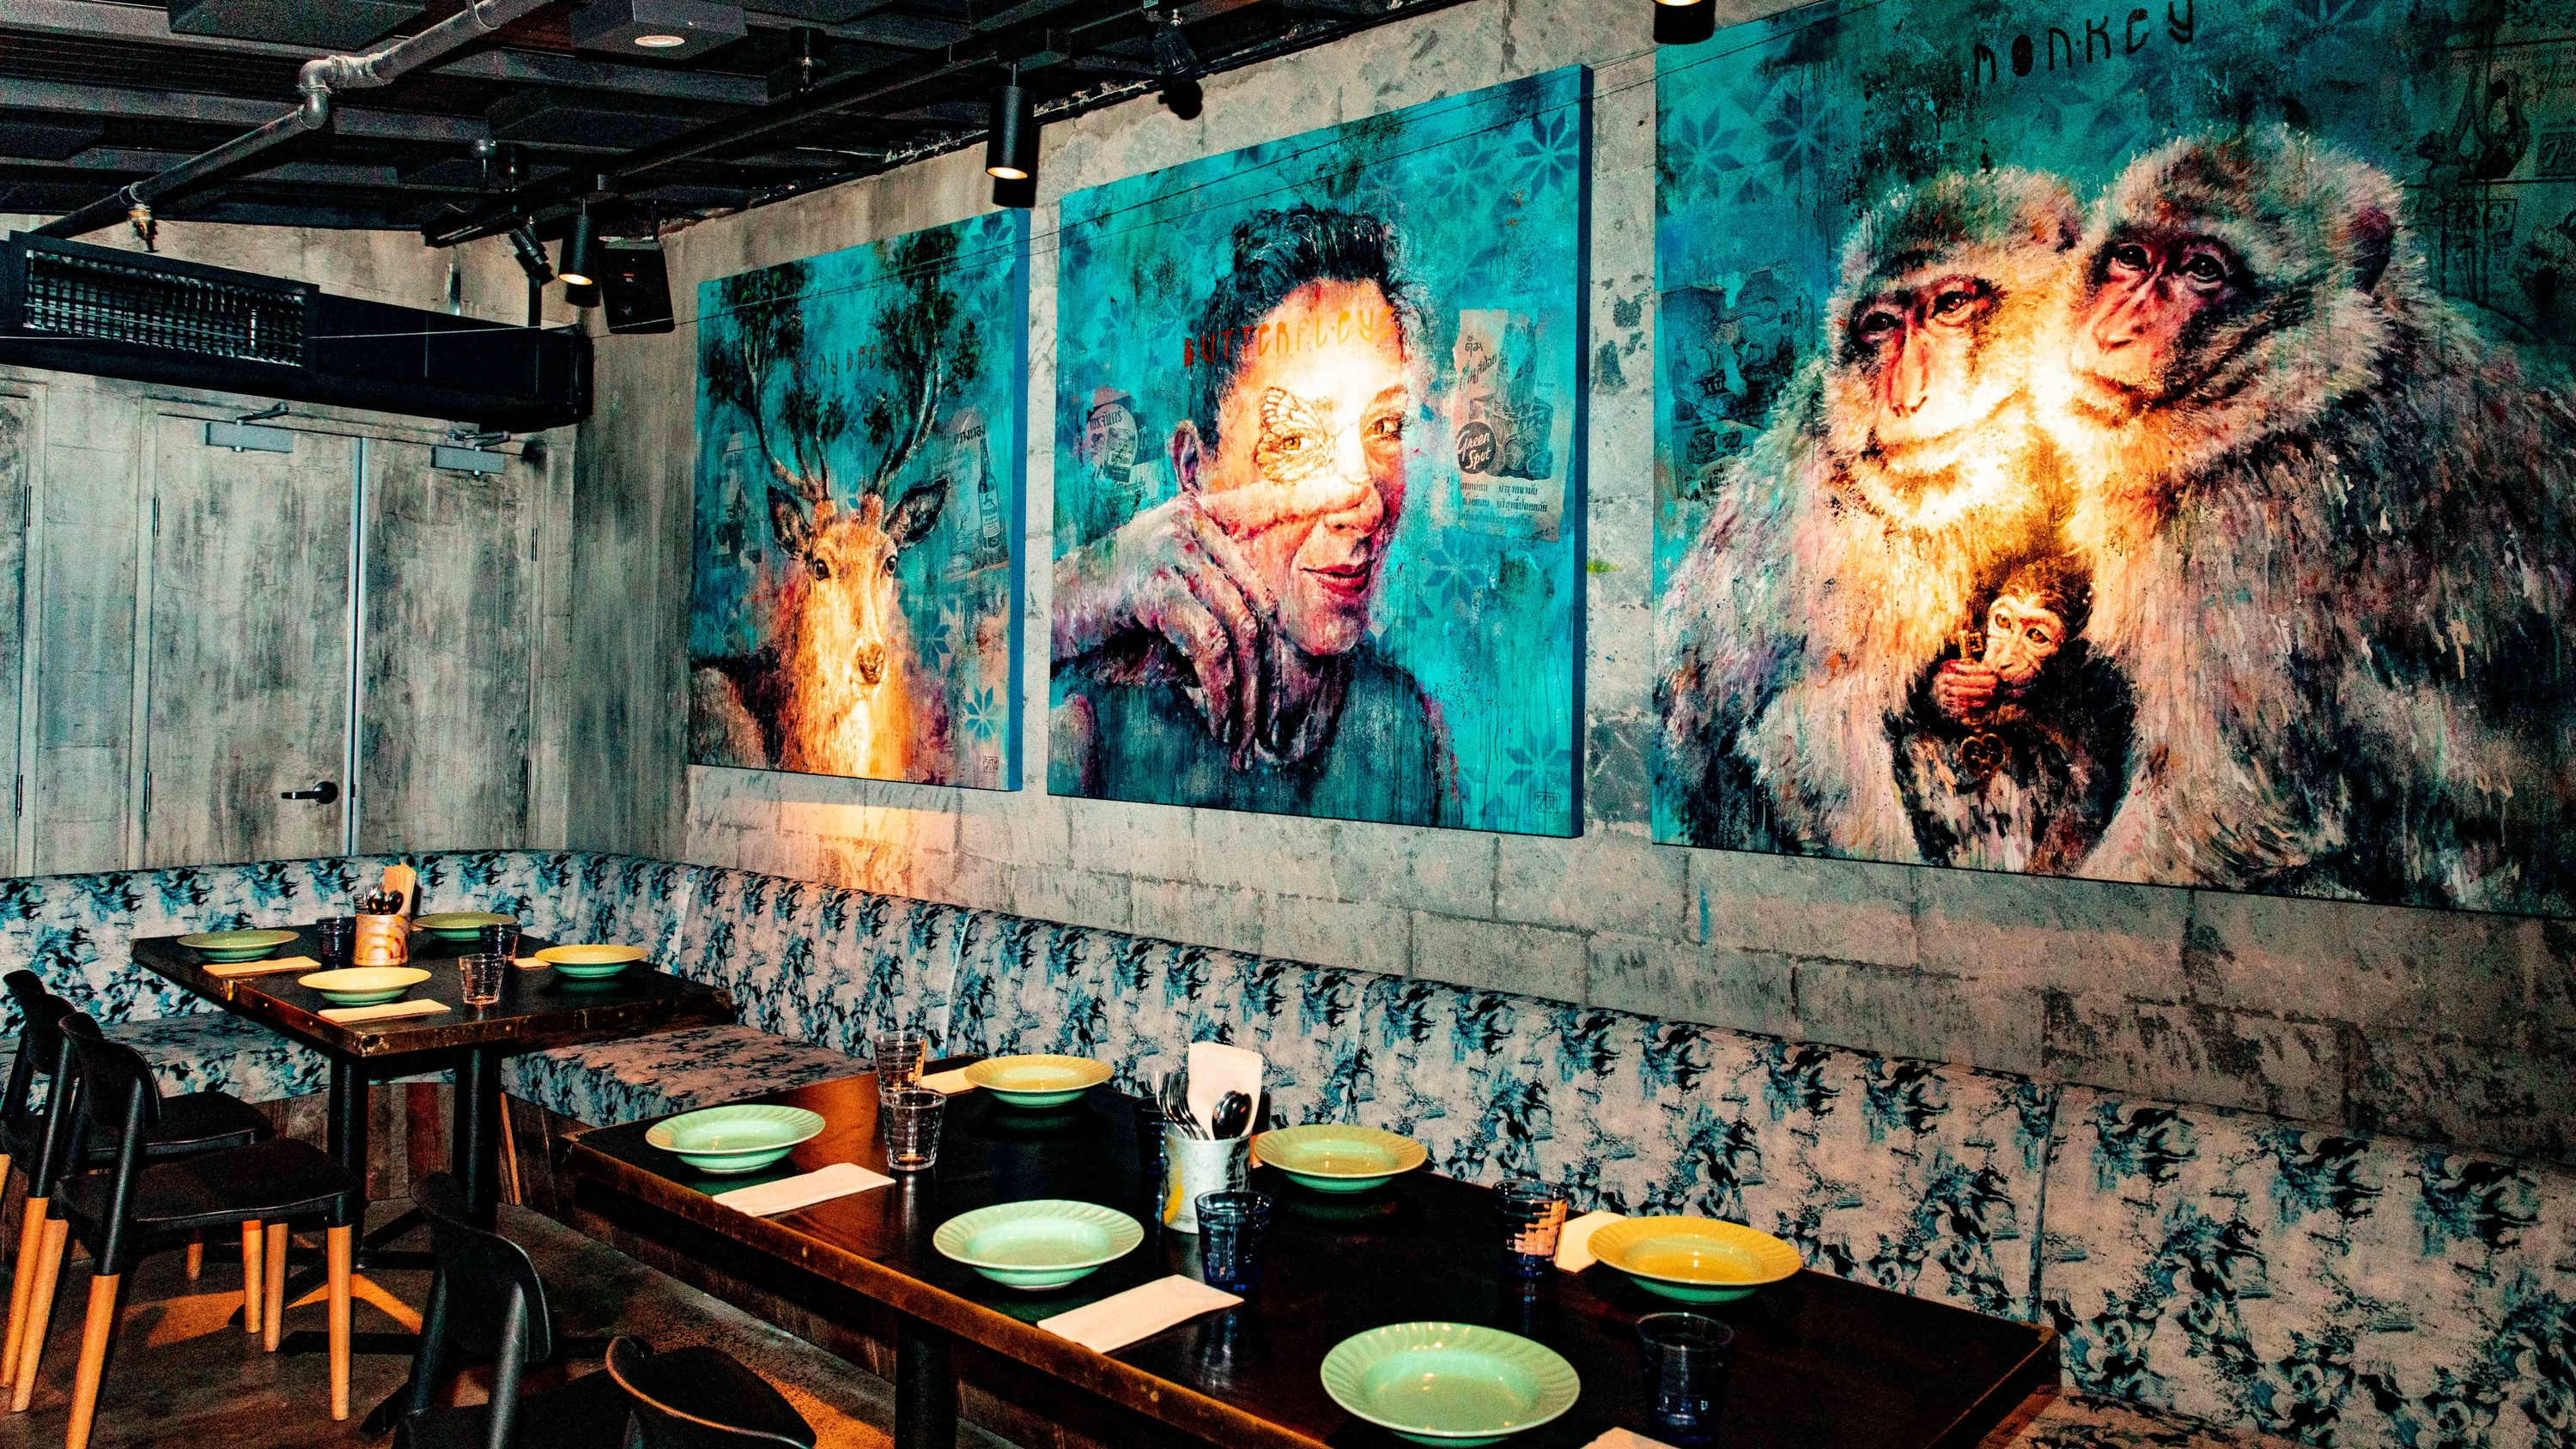 Tables in front of mural